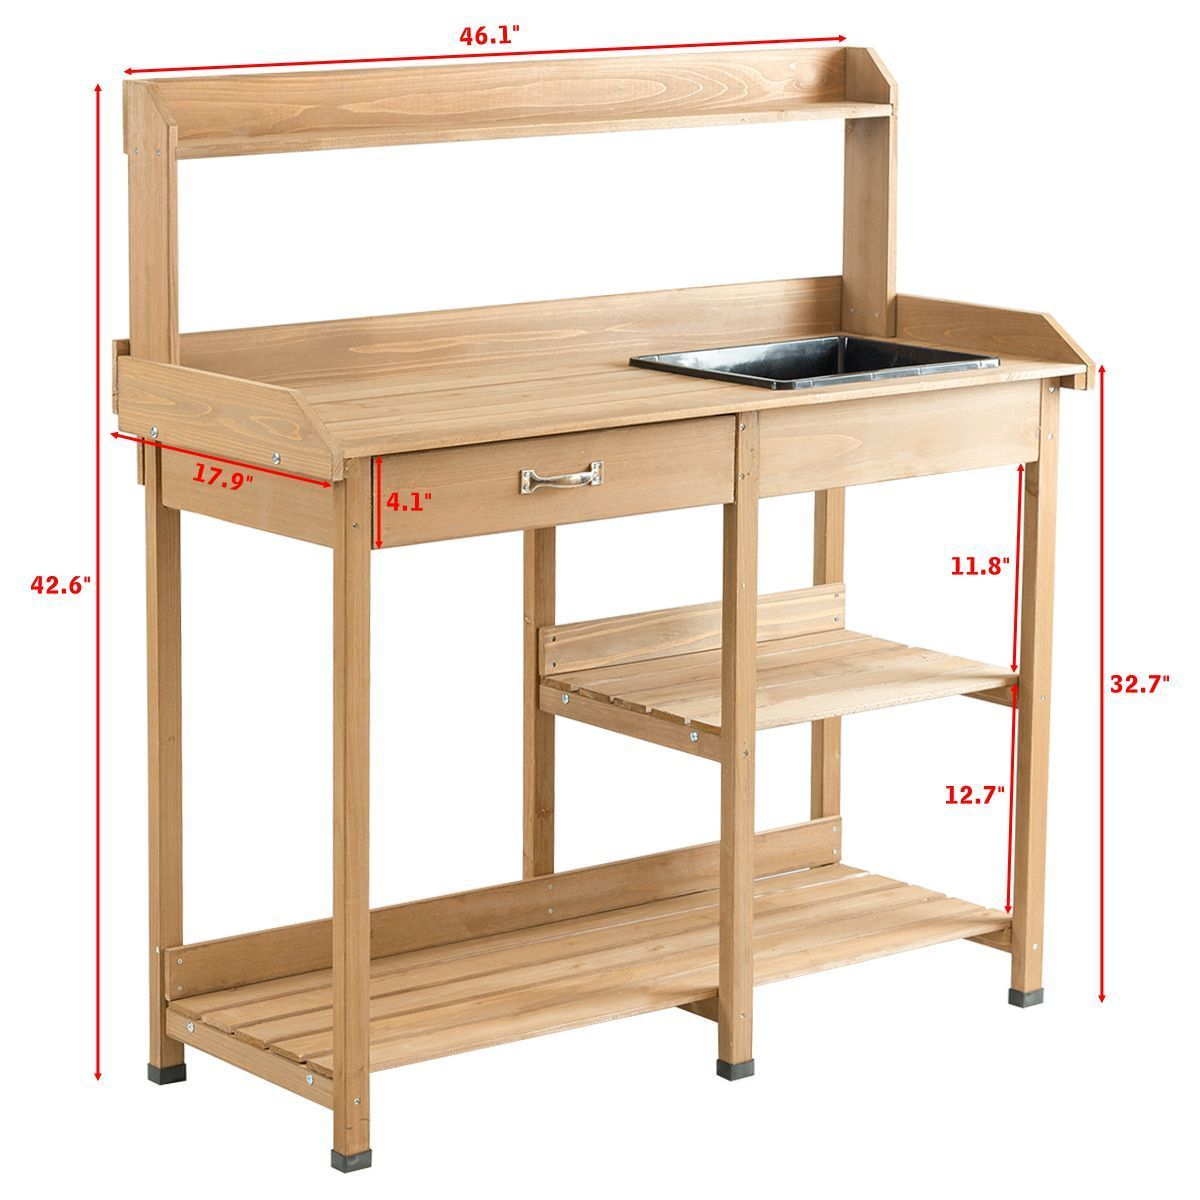 Gymax Potting Table Bench Outdoor Indoor Work Station Garden Planting Wood  Shelves